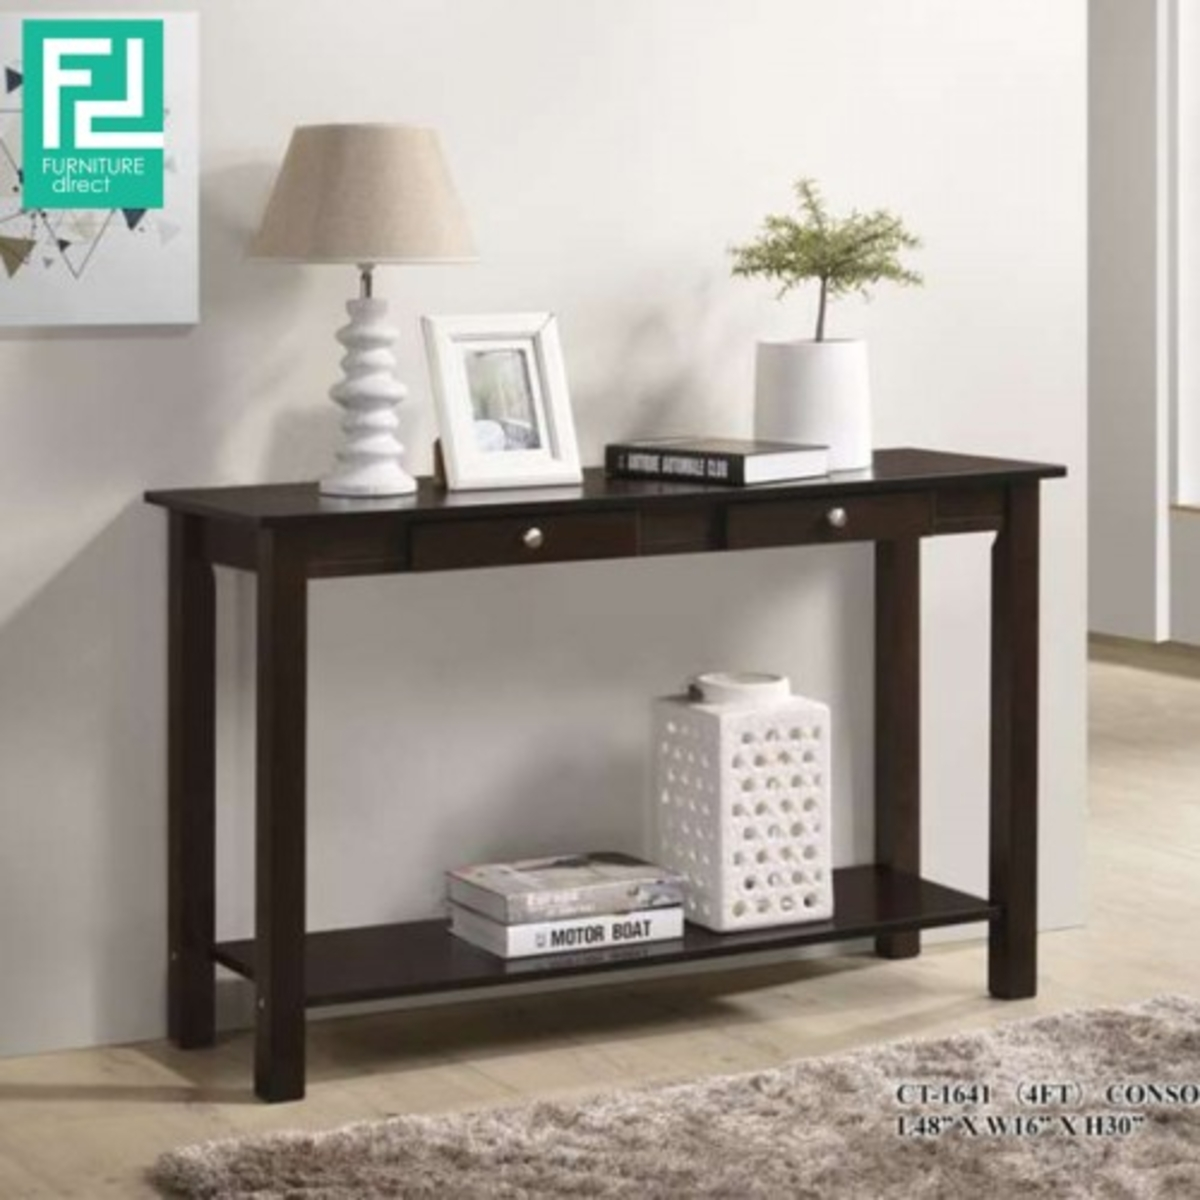 Furniture Direct 4 Ft Console Table Ct 1641